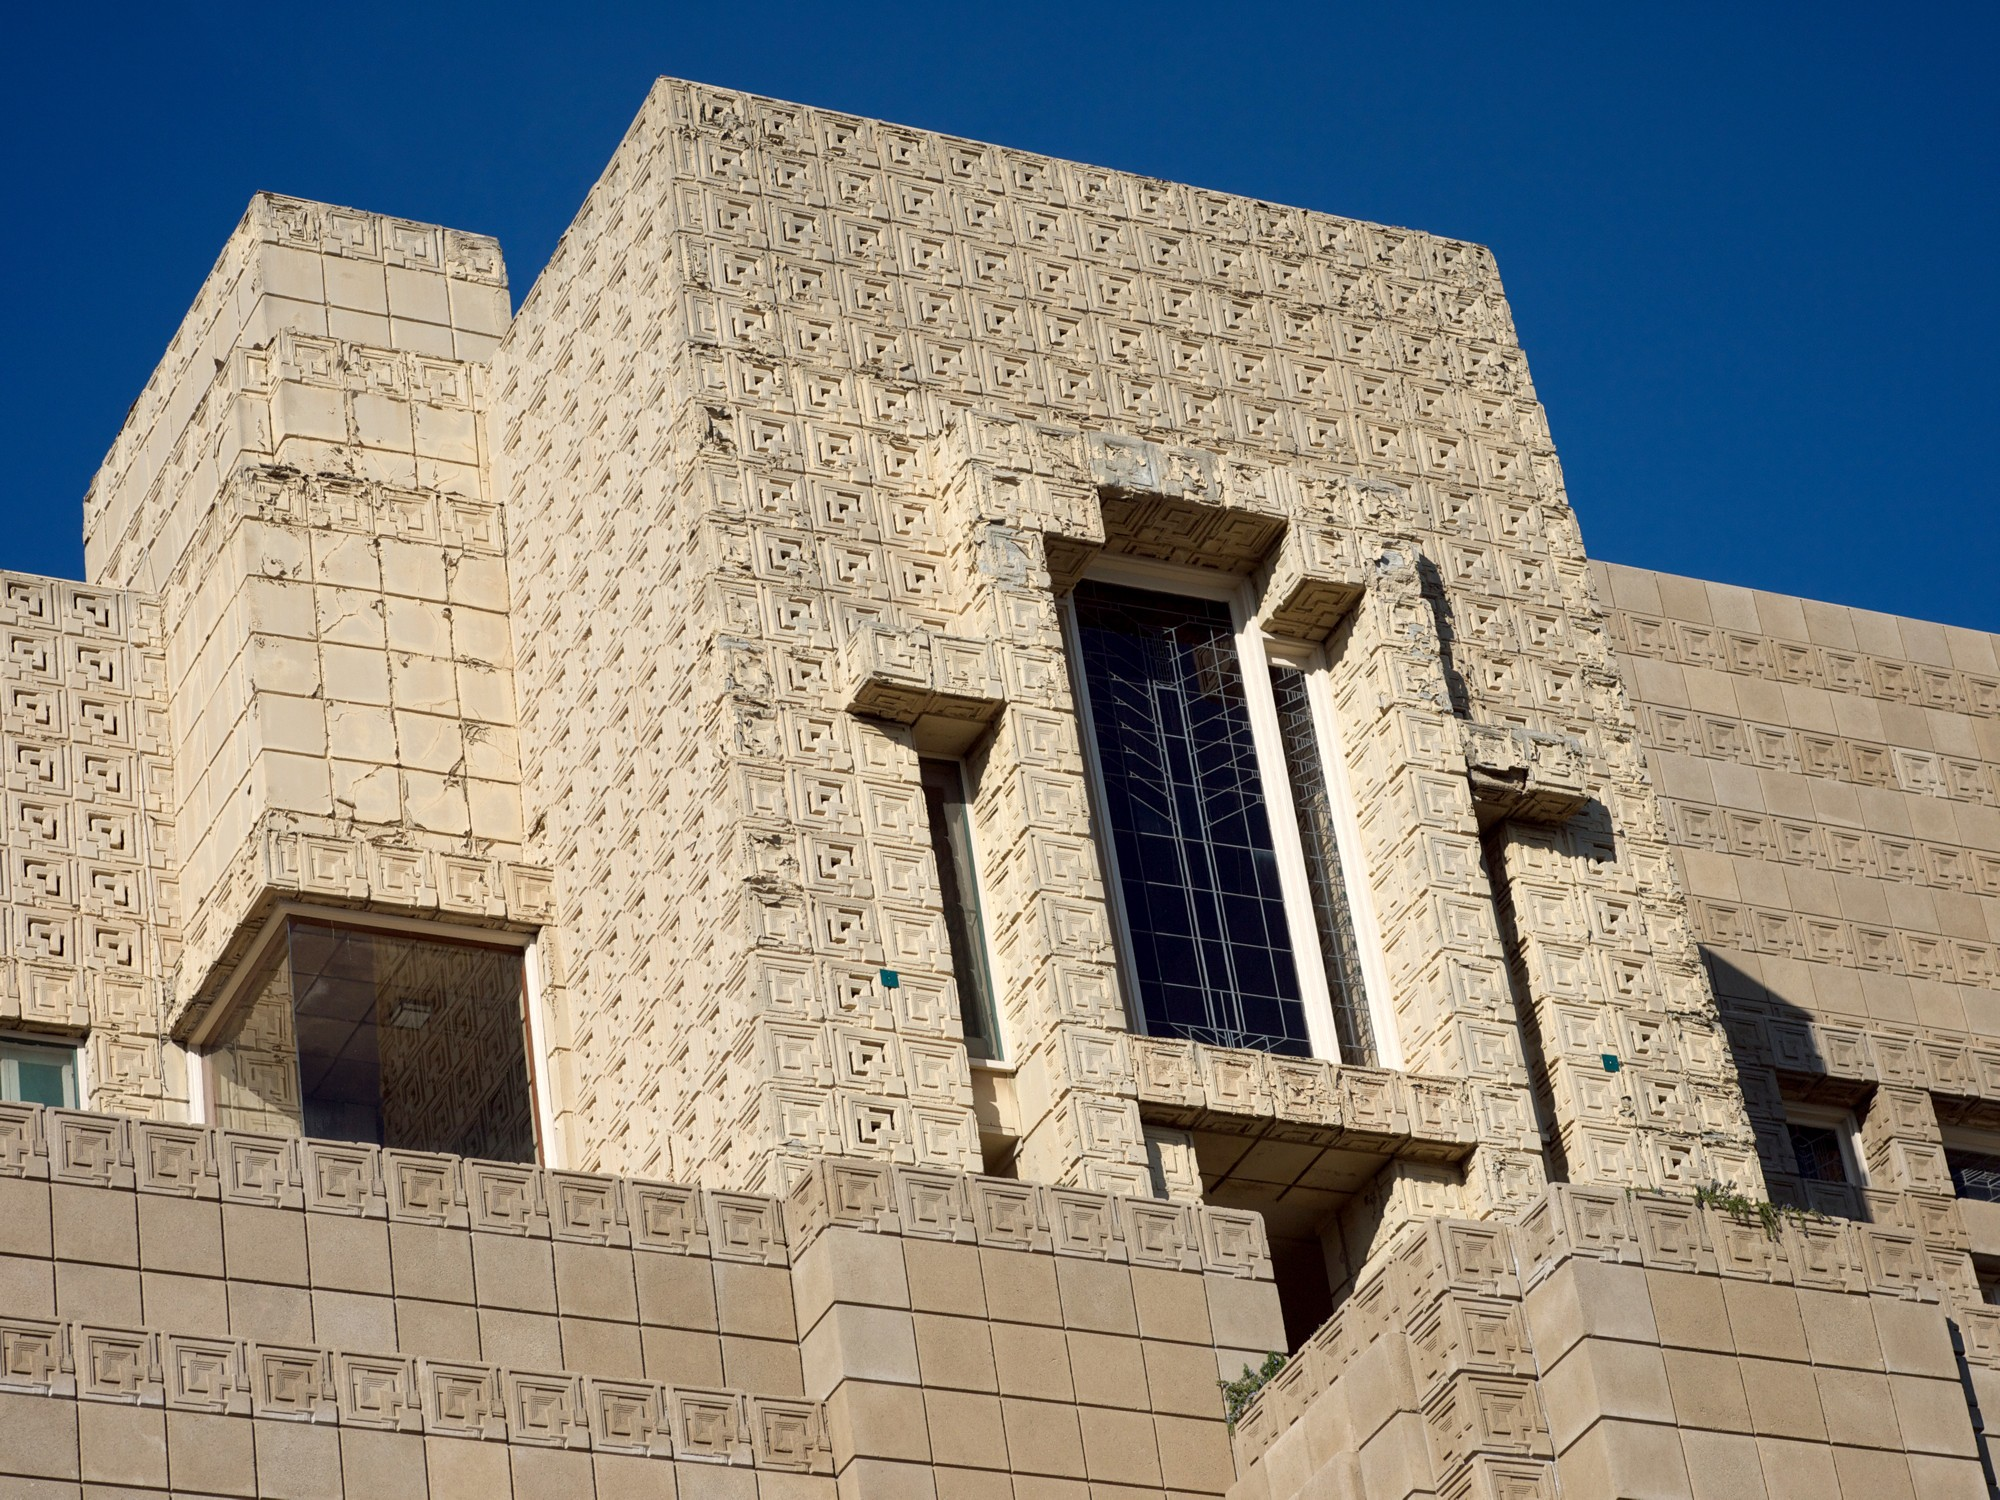 5 things you didnt know about Frank Lloyd Wright